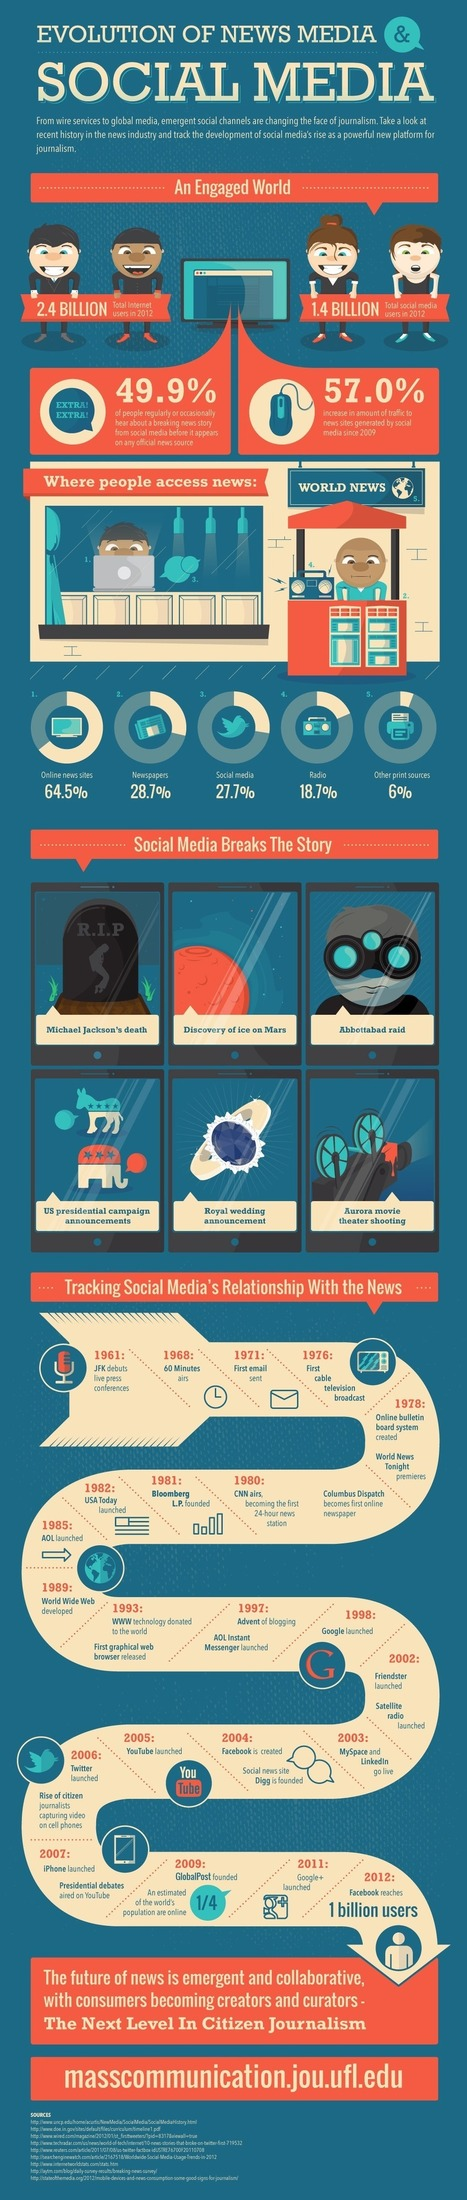 Infographic: Social Media Traffic to News Sites Increase 57% | Journallynx | Scoop.it